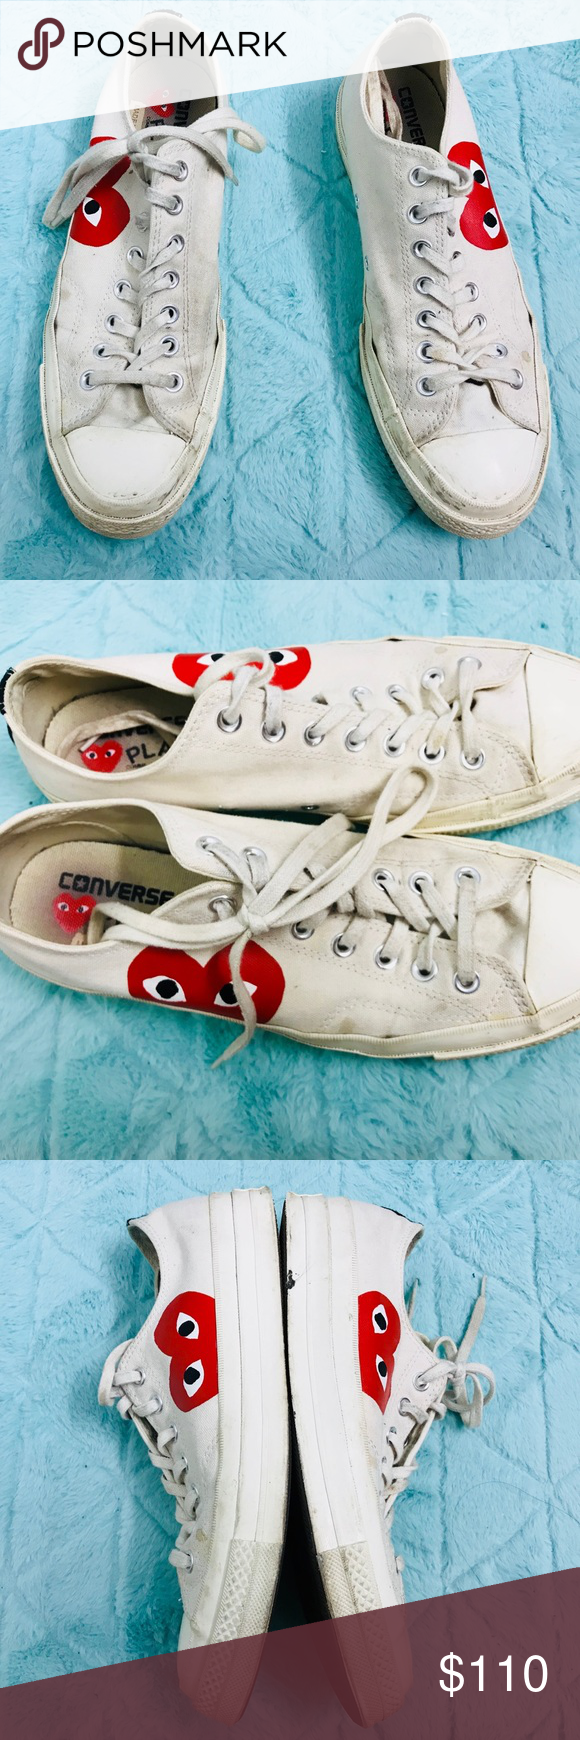 Converse Comme des Garcons white low top 9M  11W Shoes and laces are dirty  and 3d52863ab